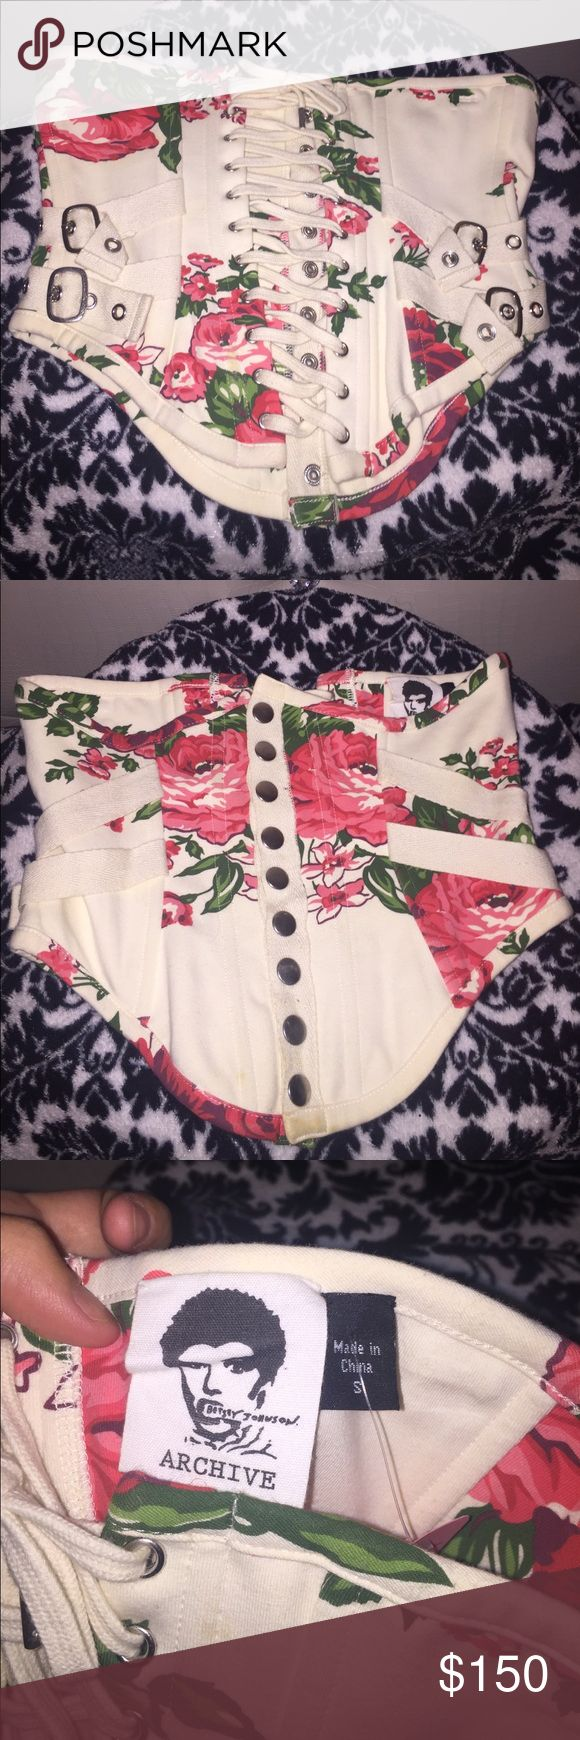 Betsey Johnson Archive corset waist trainer Hard to find! Waist trainer corset from Betsey Johnson. The vintage archive punk face collection. Size S New without tags. Betsey Johnson Other